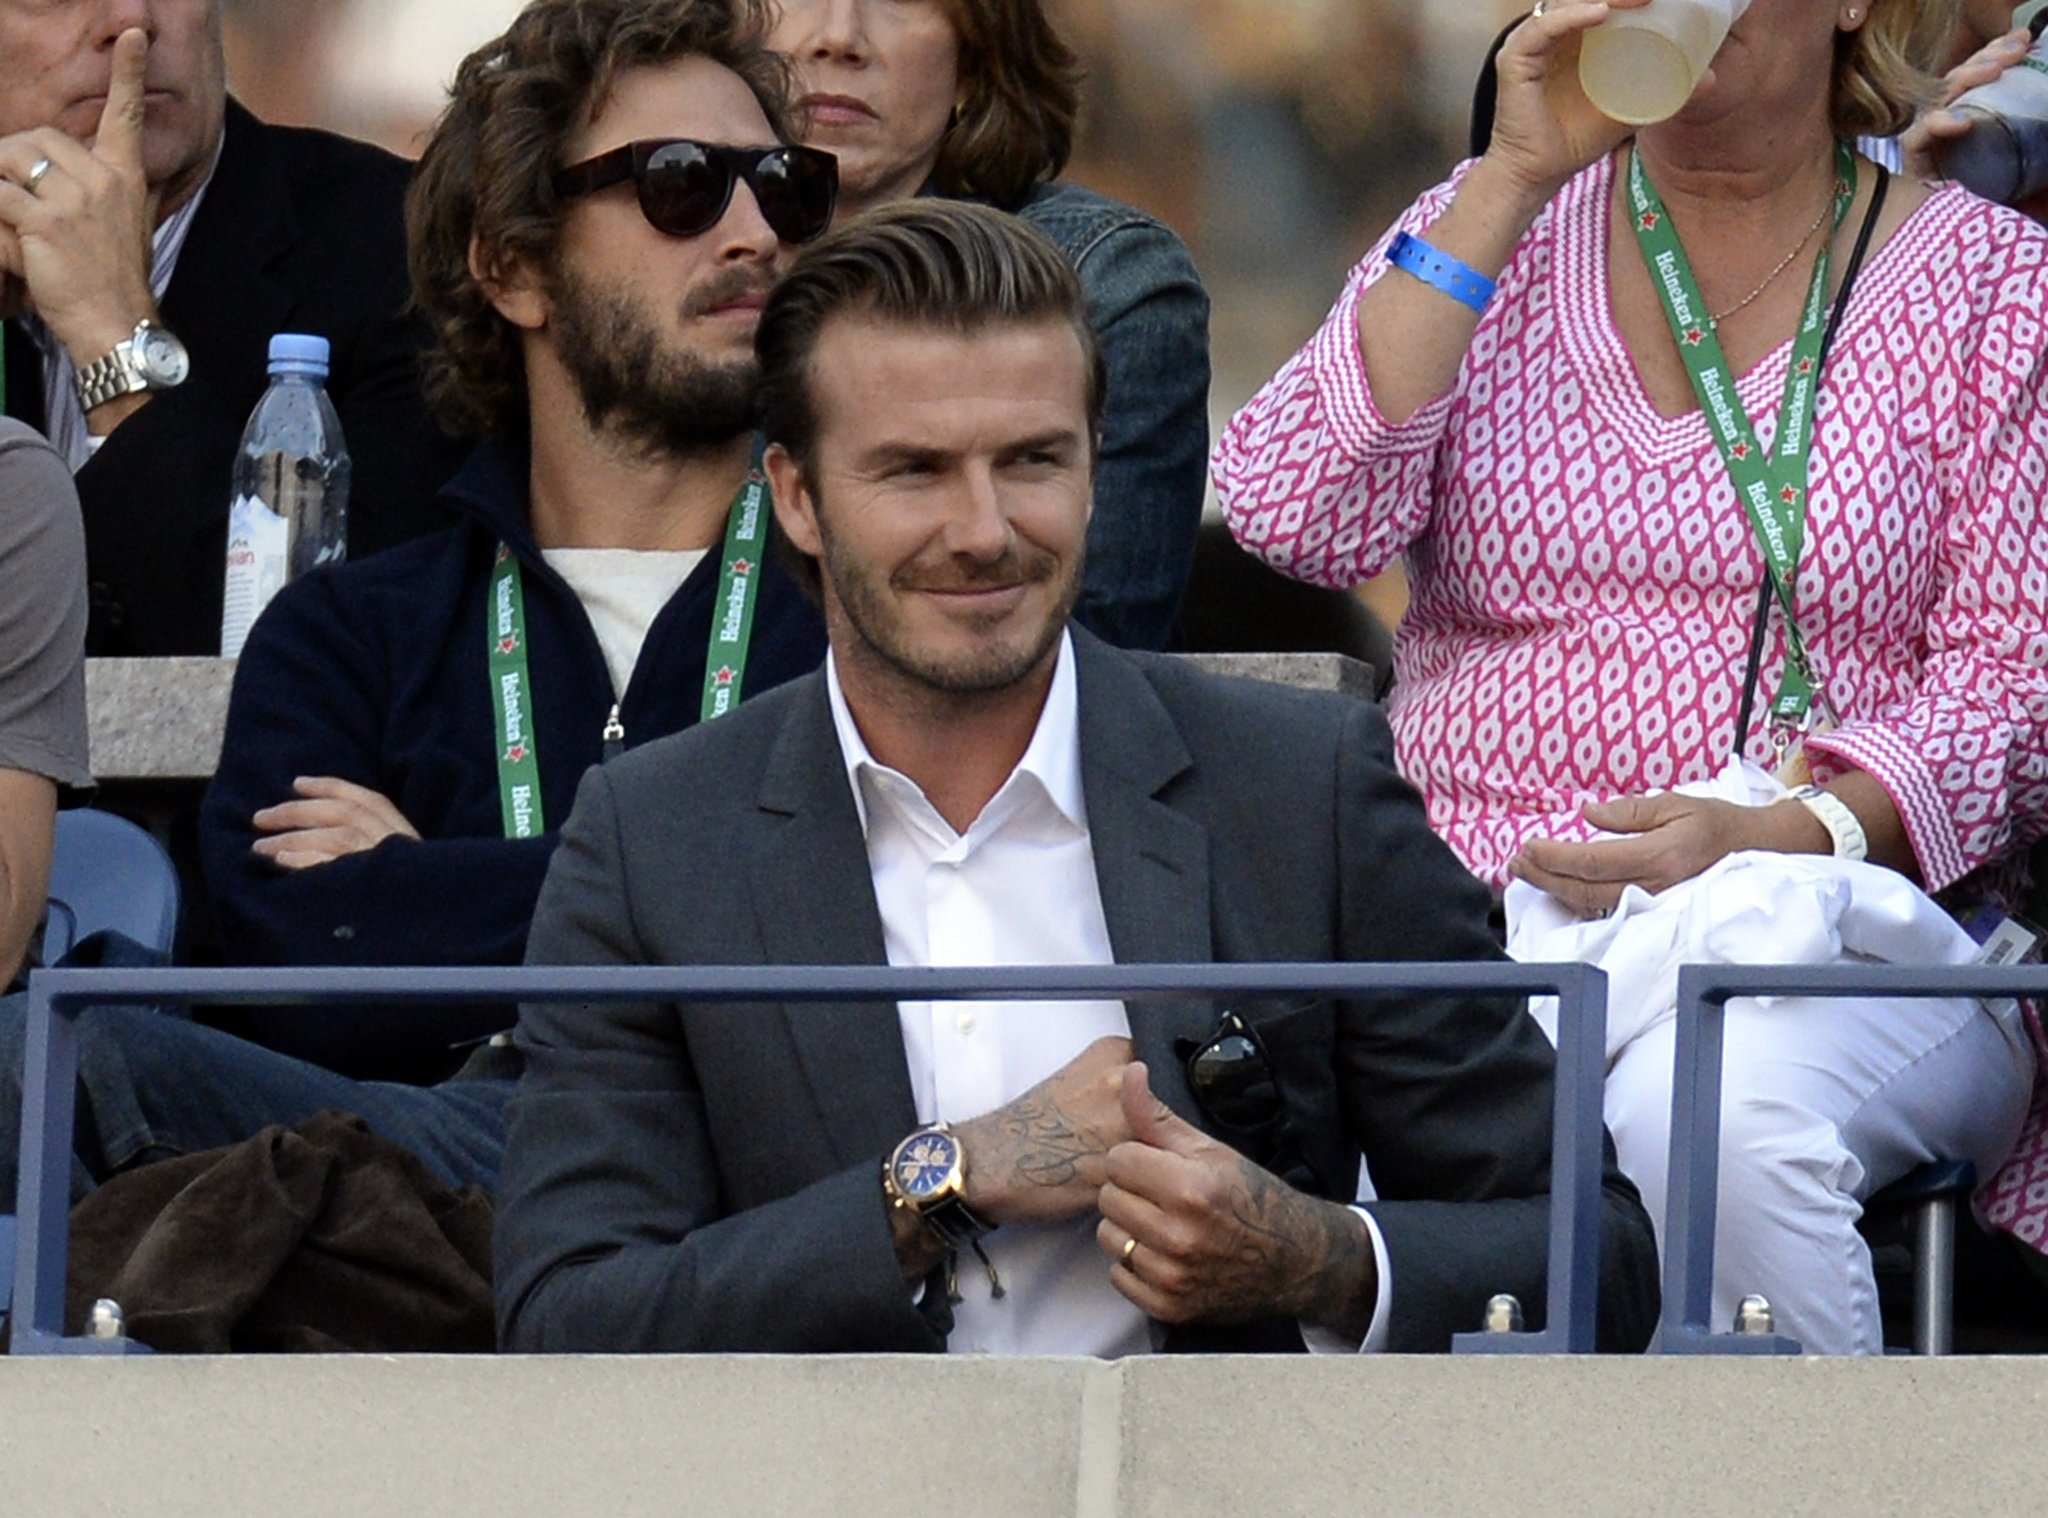 David Beckham sported a dapper suit for the US Open.